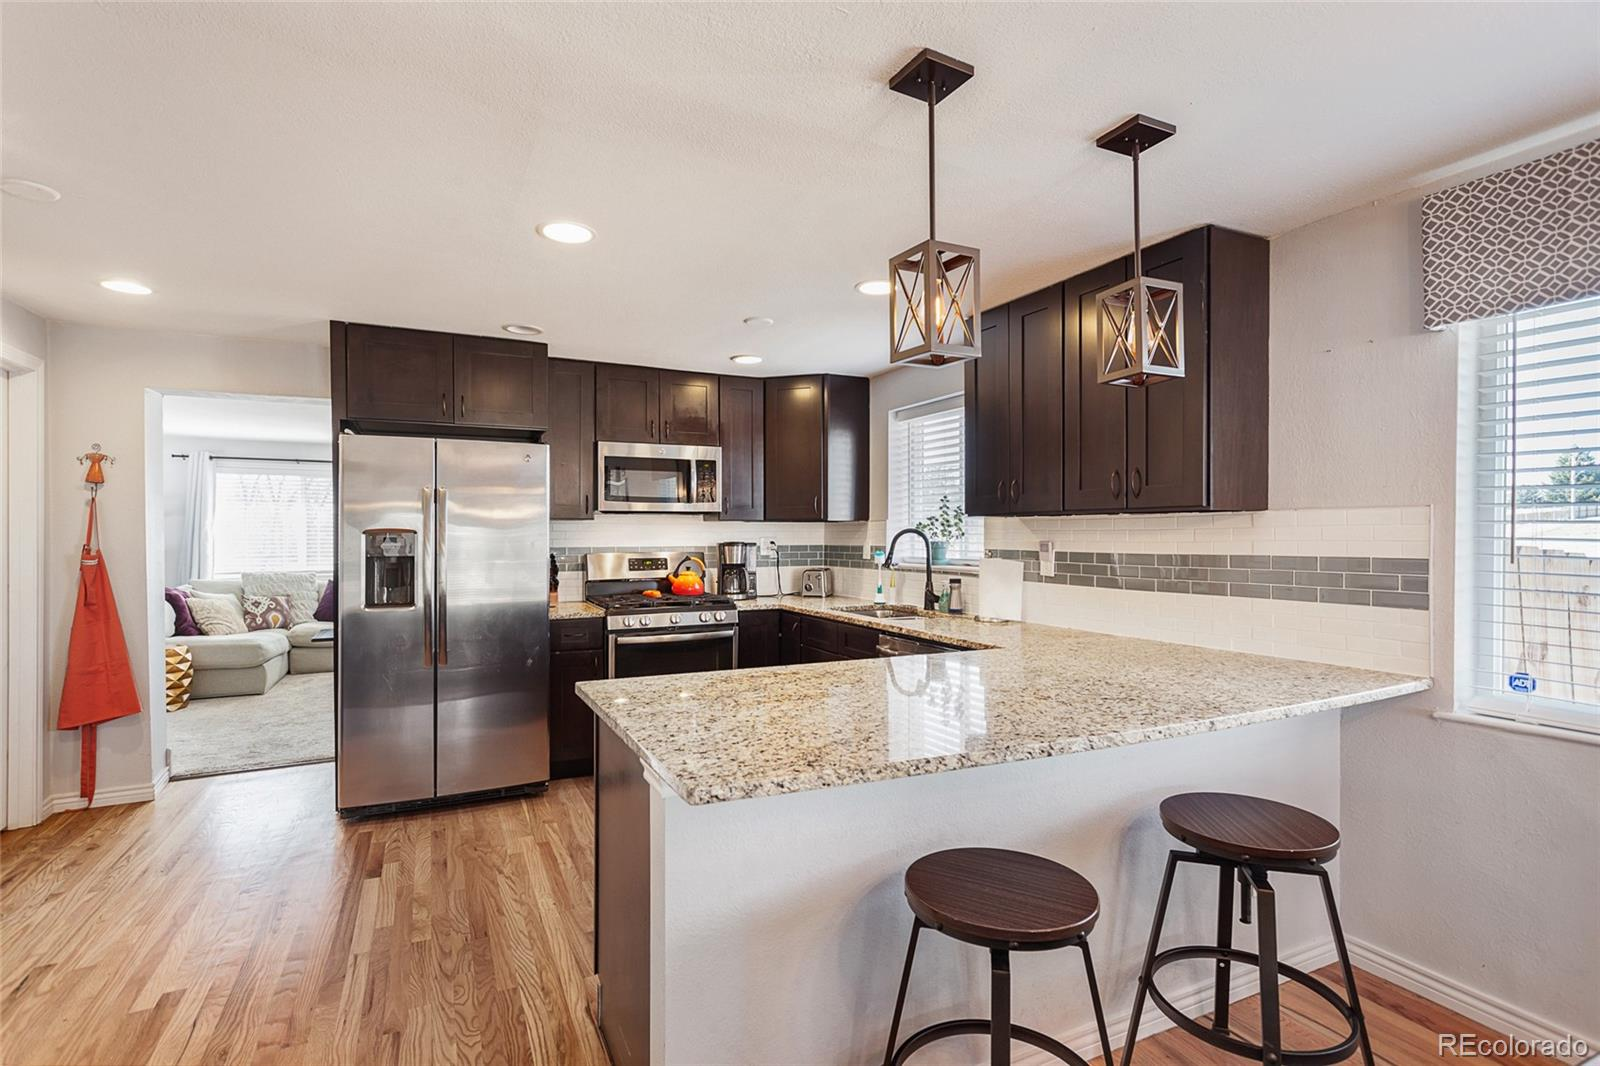 MLS# 4969690 - 9 - 9570 W 54th Place, Arvada, CO 80002